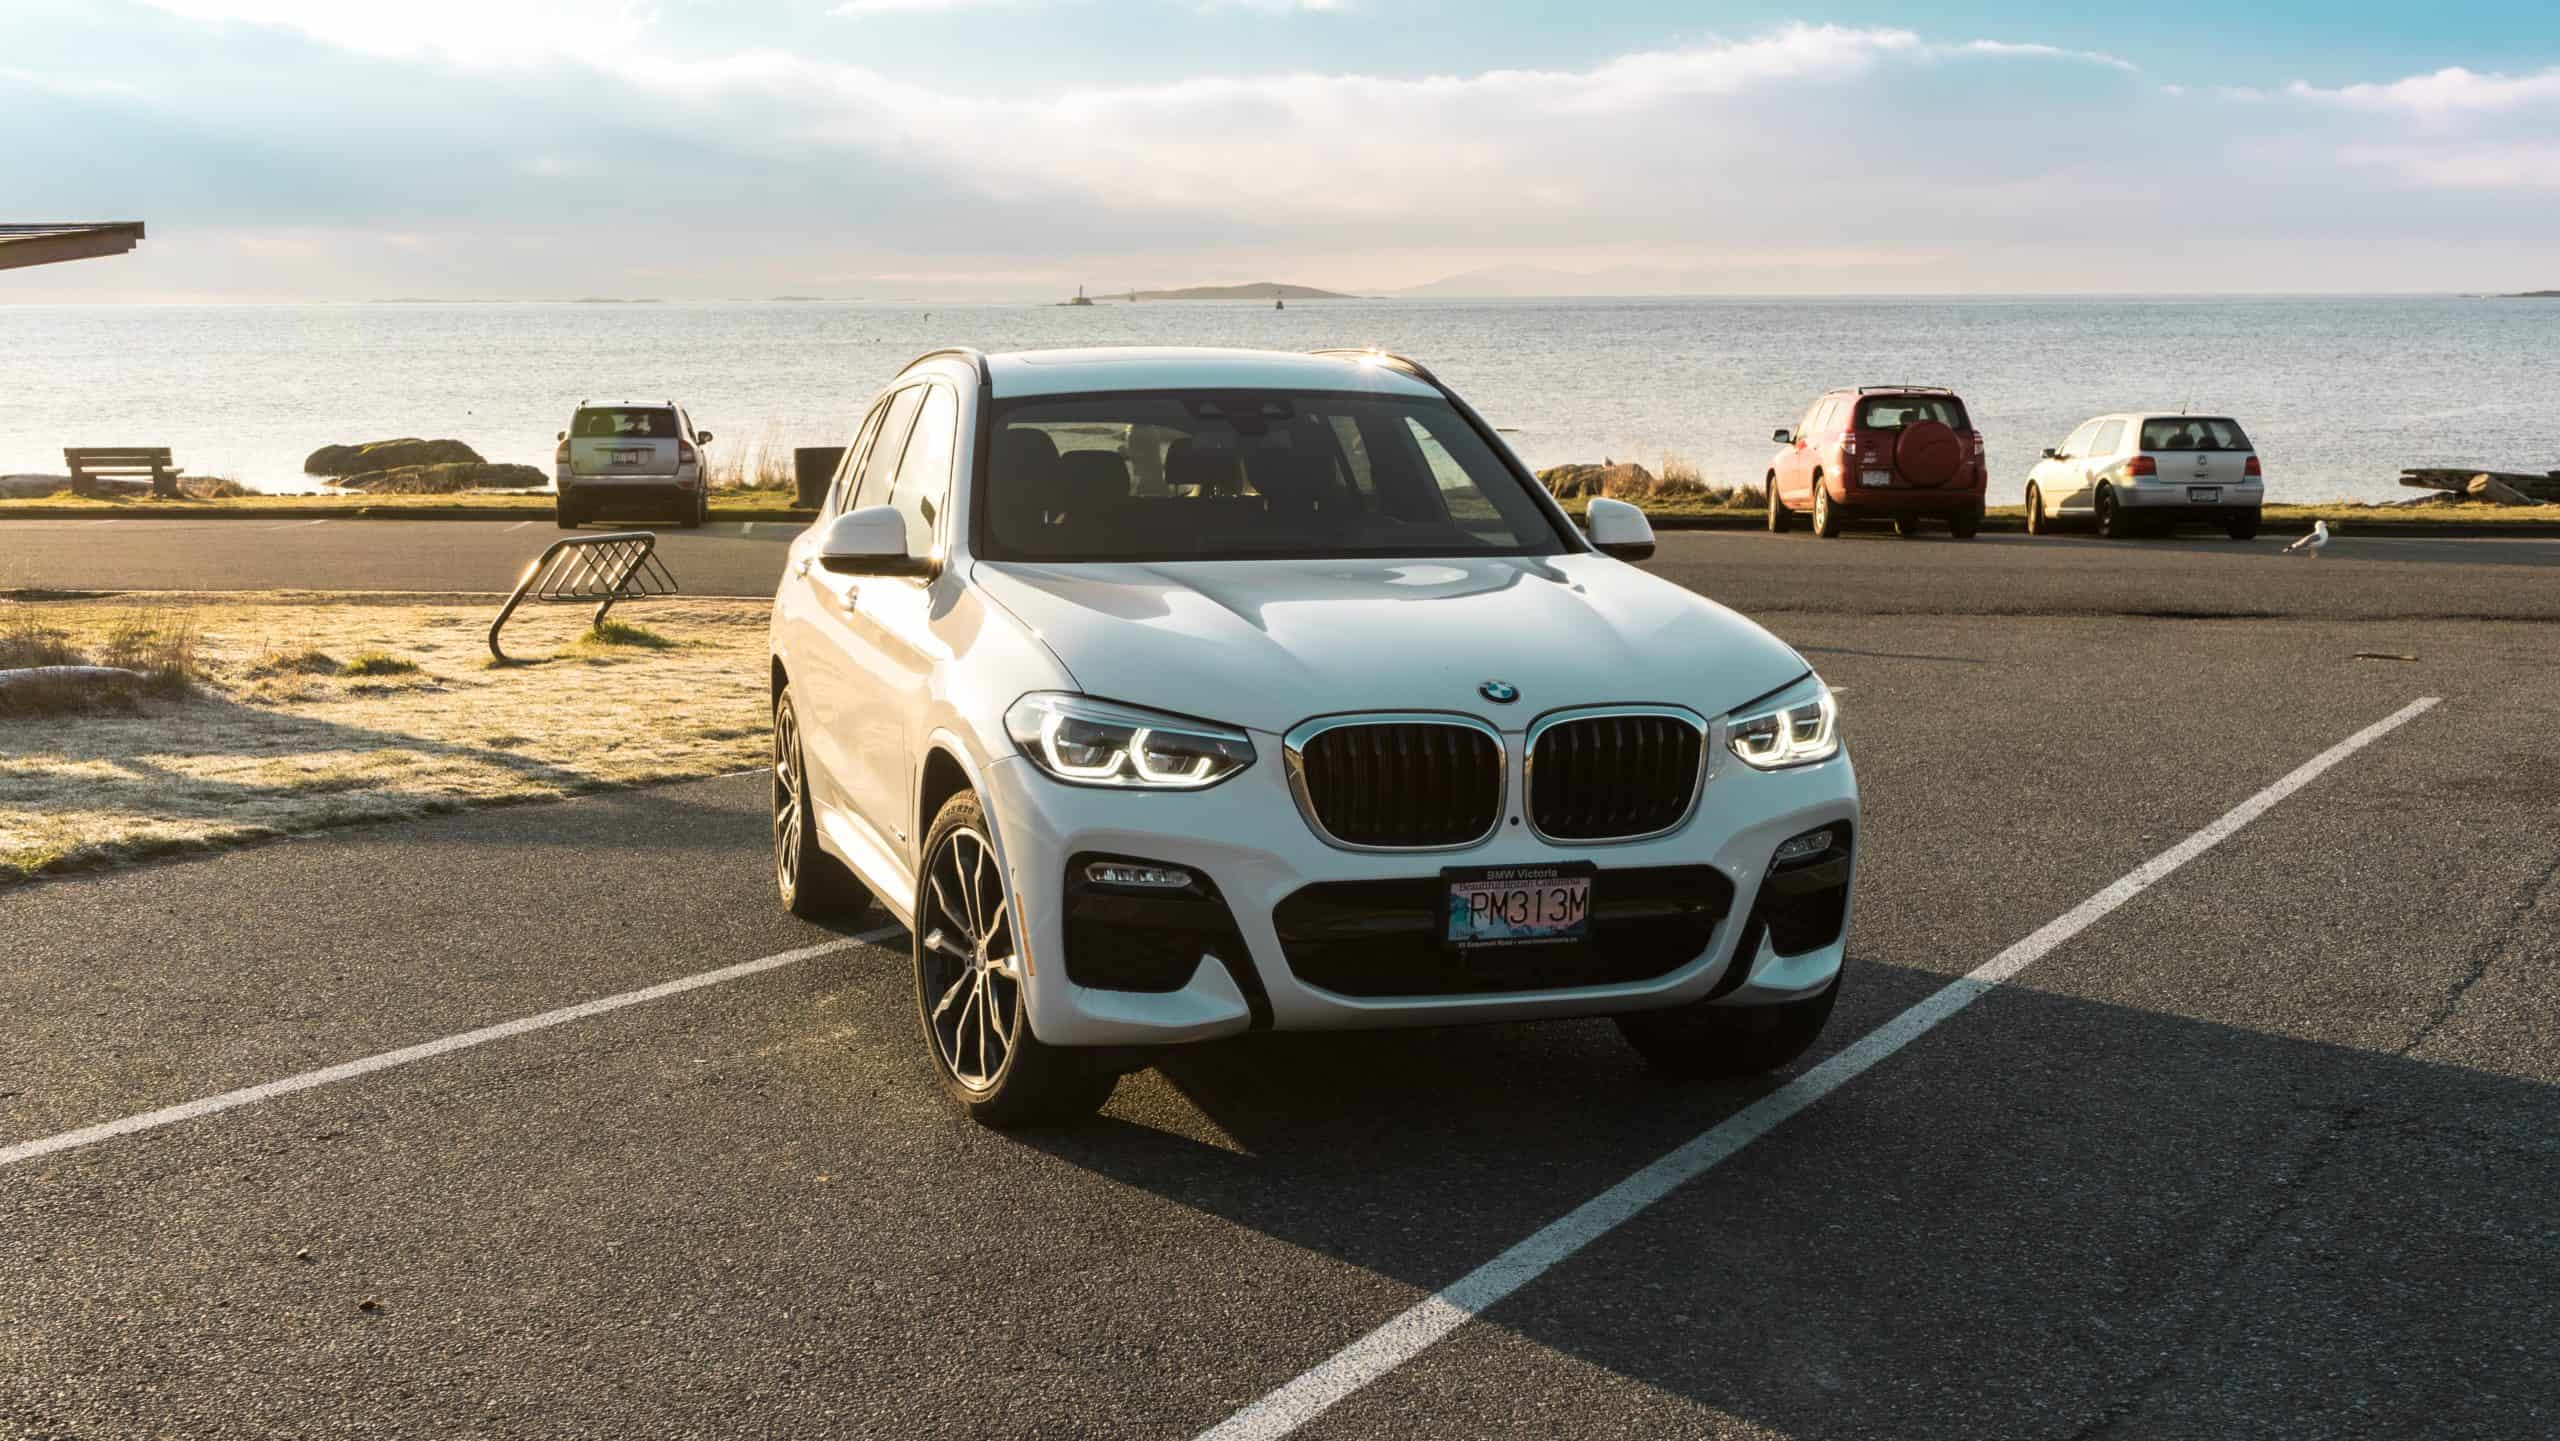 5 Unique Features You Will Find Only In A Luxury SUV